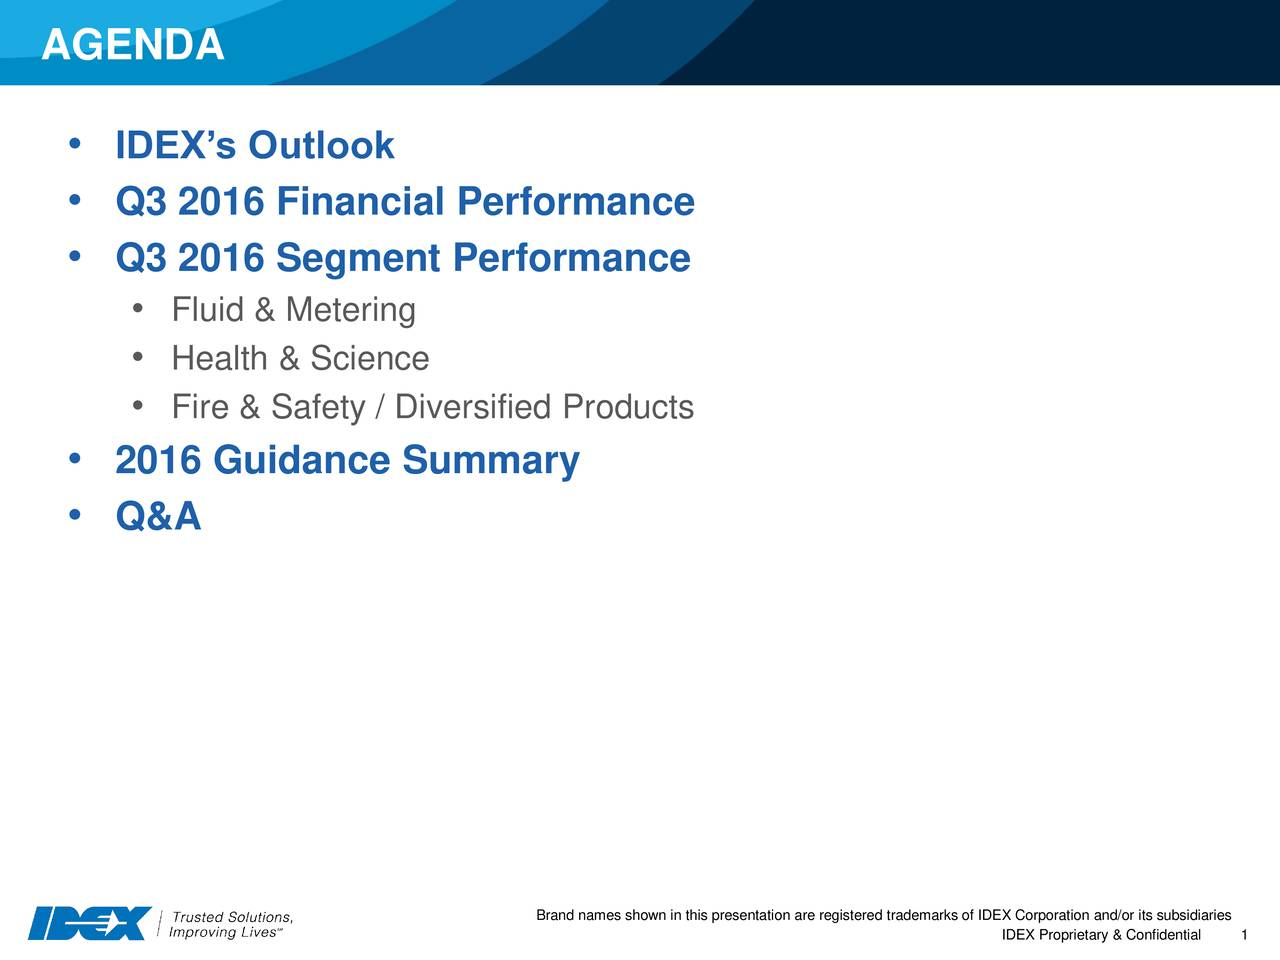 IDEXs Outlook Q3 2016 Financial Performance Q3 2016 Segment Performance Fluid & Metering Health & Science Fire & Safety / Diversified Products 2016 Guidance Summary Q&A Brand names shown in this presIDEX Proprietar1 & Confidentialrks of IDEX Corporation and/or its subsidiaries